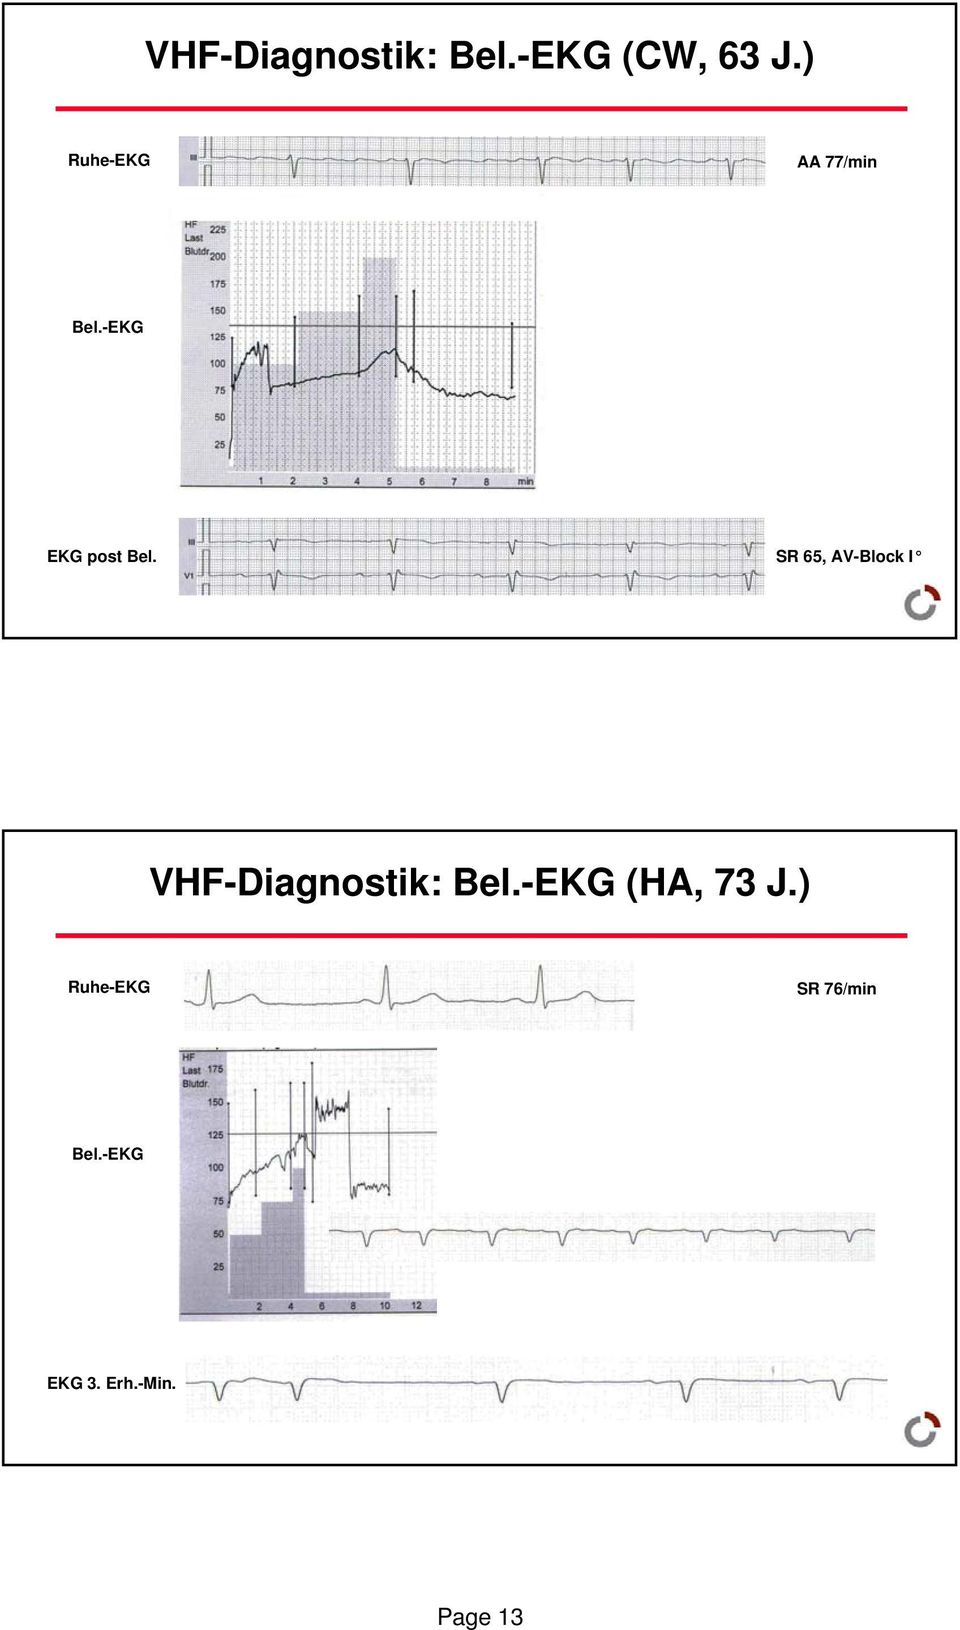 SR 65, AV-Block I VHF-Diagnostik: Bel.